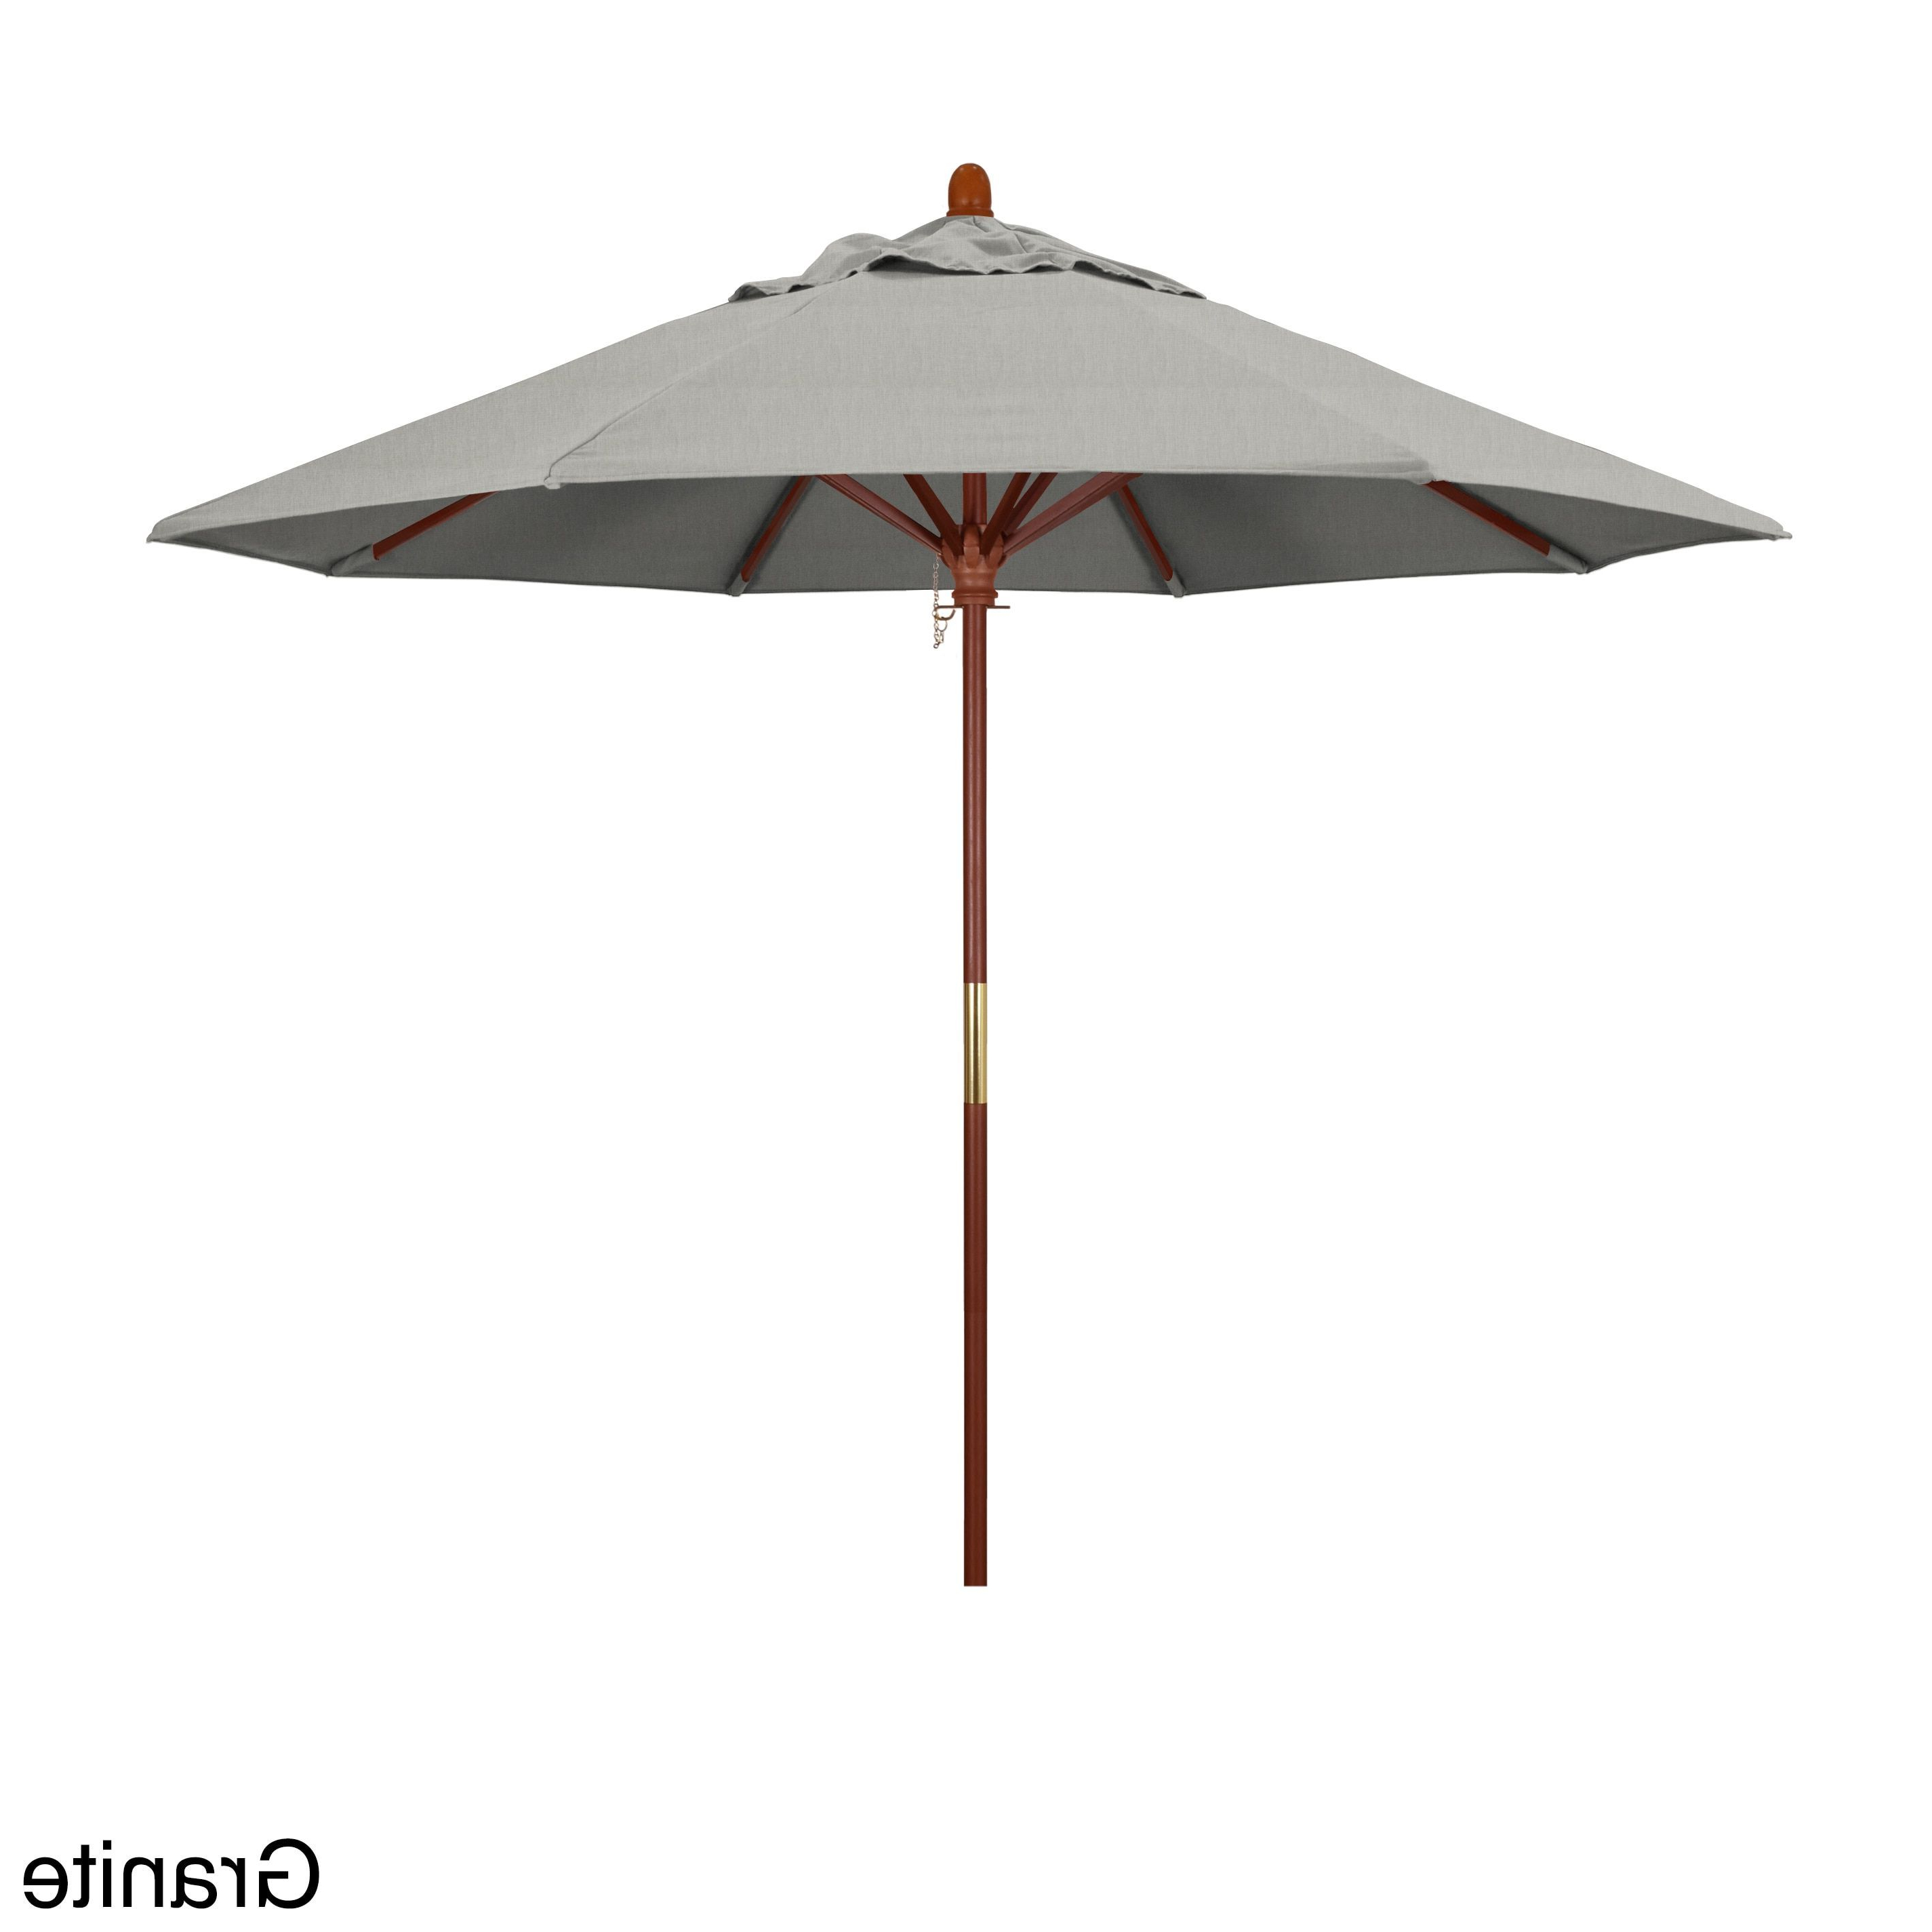 California Umbrella 9' Round Marenti Wood Frame Market Umbrella With Regard To Well Known Devansh Drape Umbrellas (View 3 of 20)